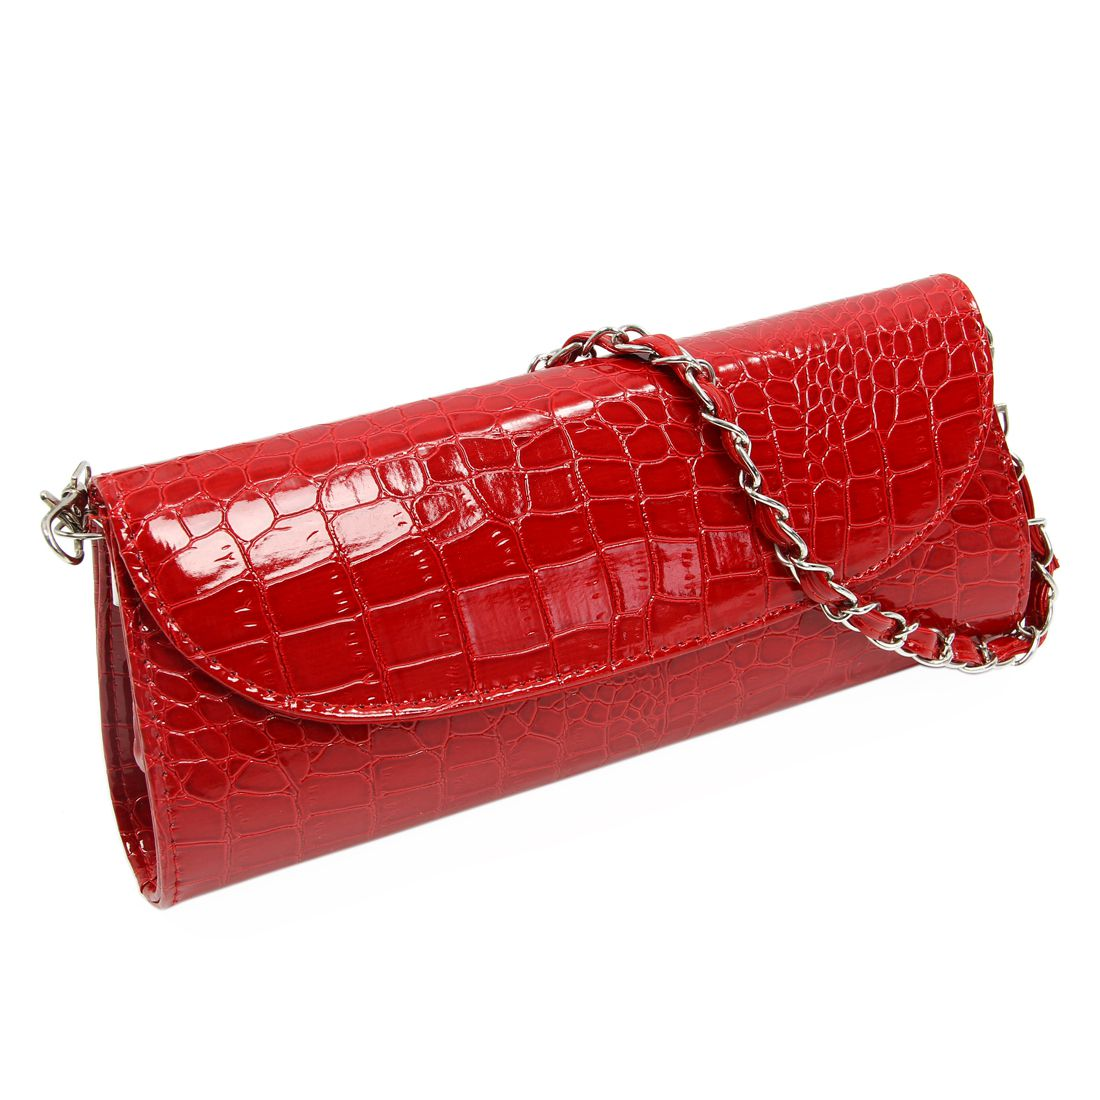 VSEN Fashion Designer Crocodile Pattern Ladies' Shoulder Chain Bag Wallet PU Leather Clutch Evening Bag Purse for Women Handbag 2017 women bag cowhide genuine leather fashion folding handbag chain shoulder bag crossbody bag handbag party clutch long wallet